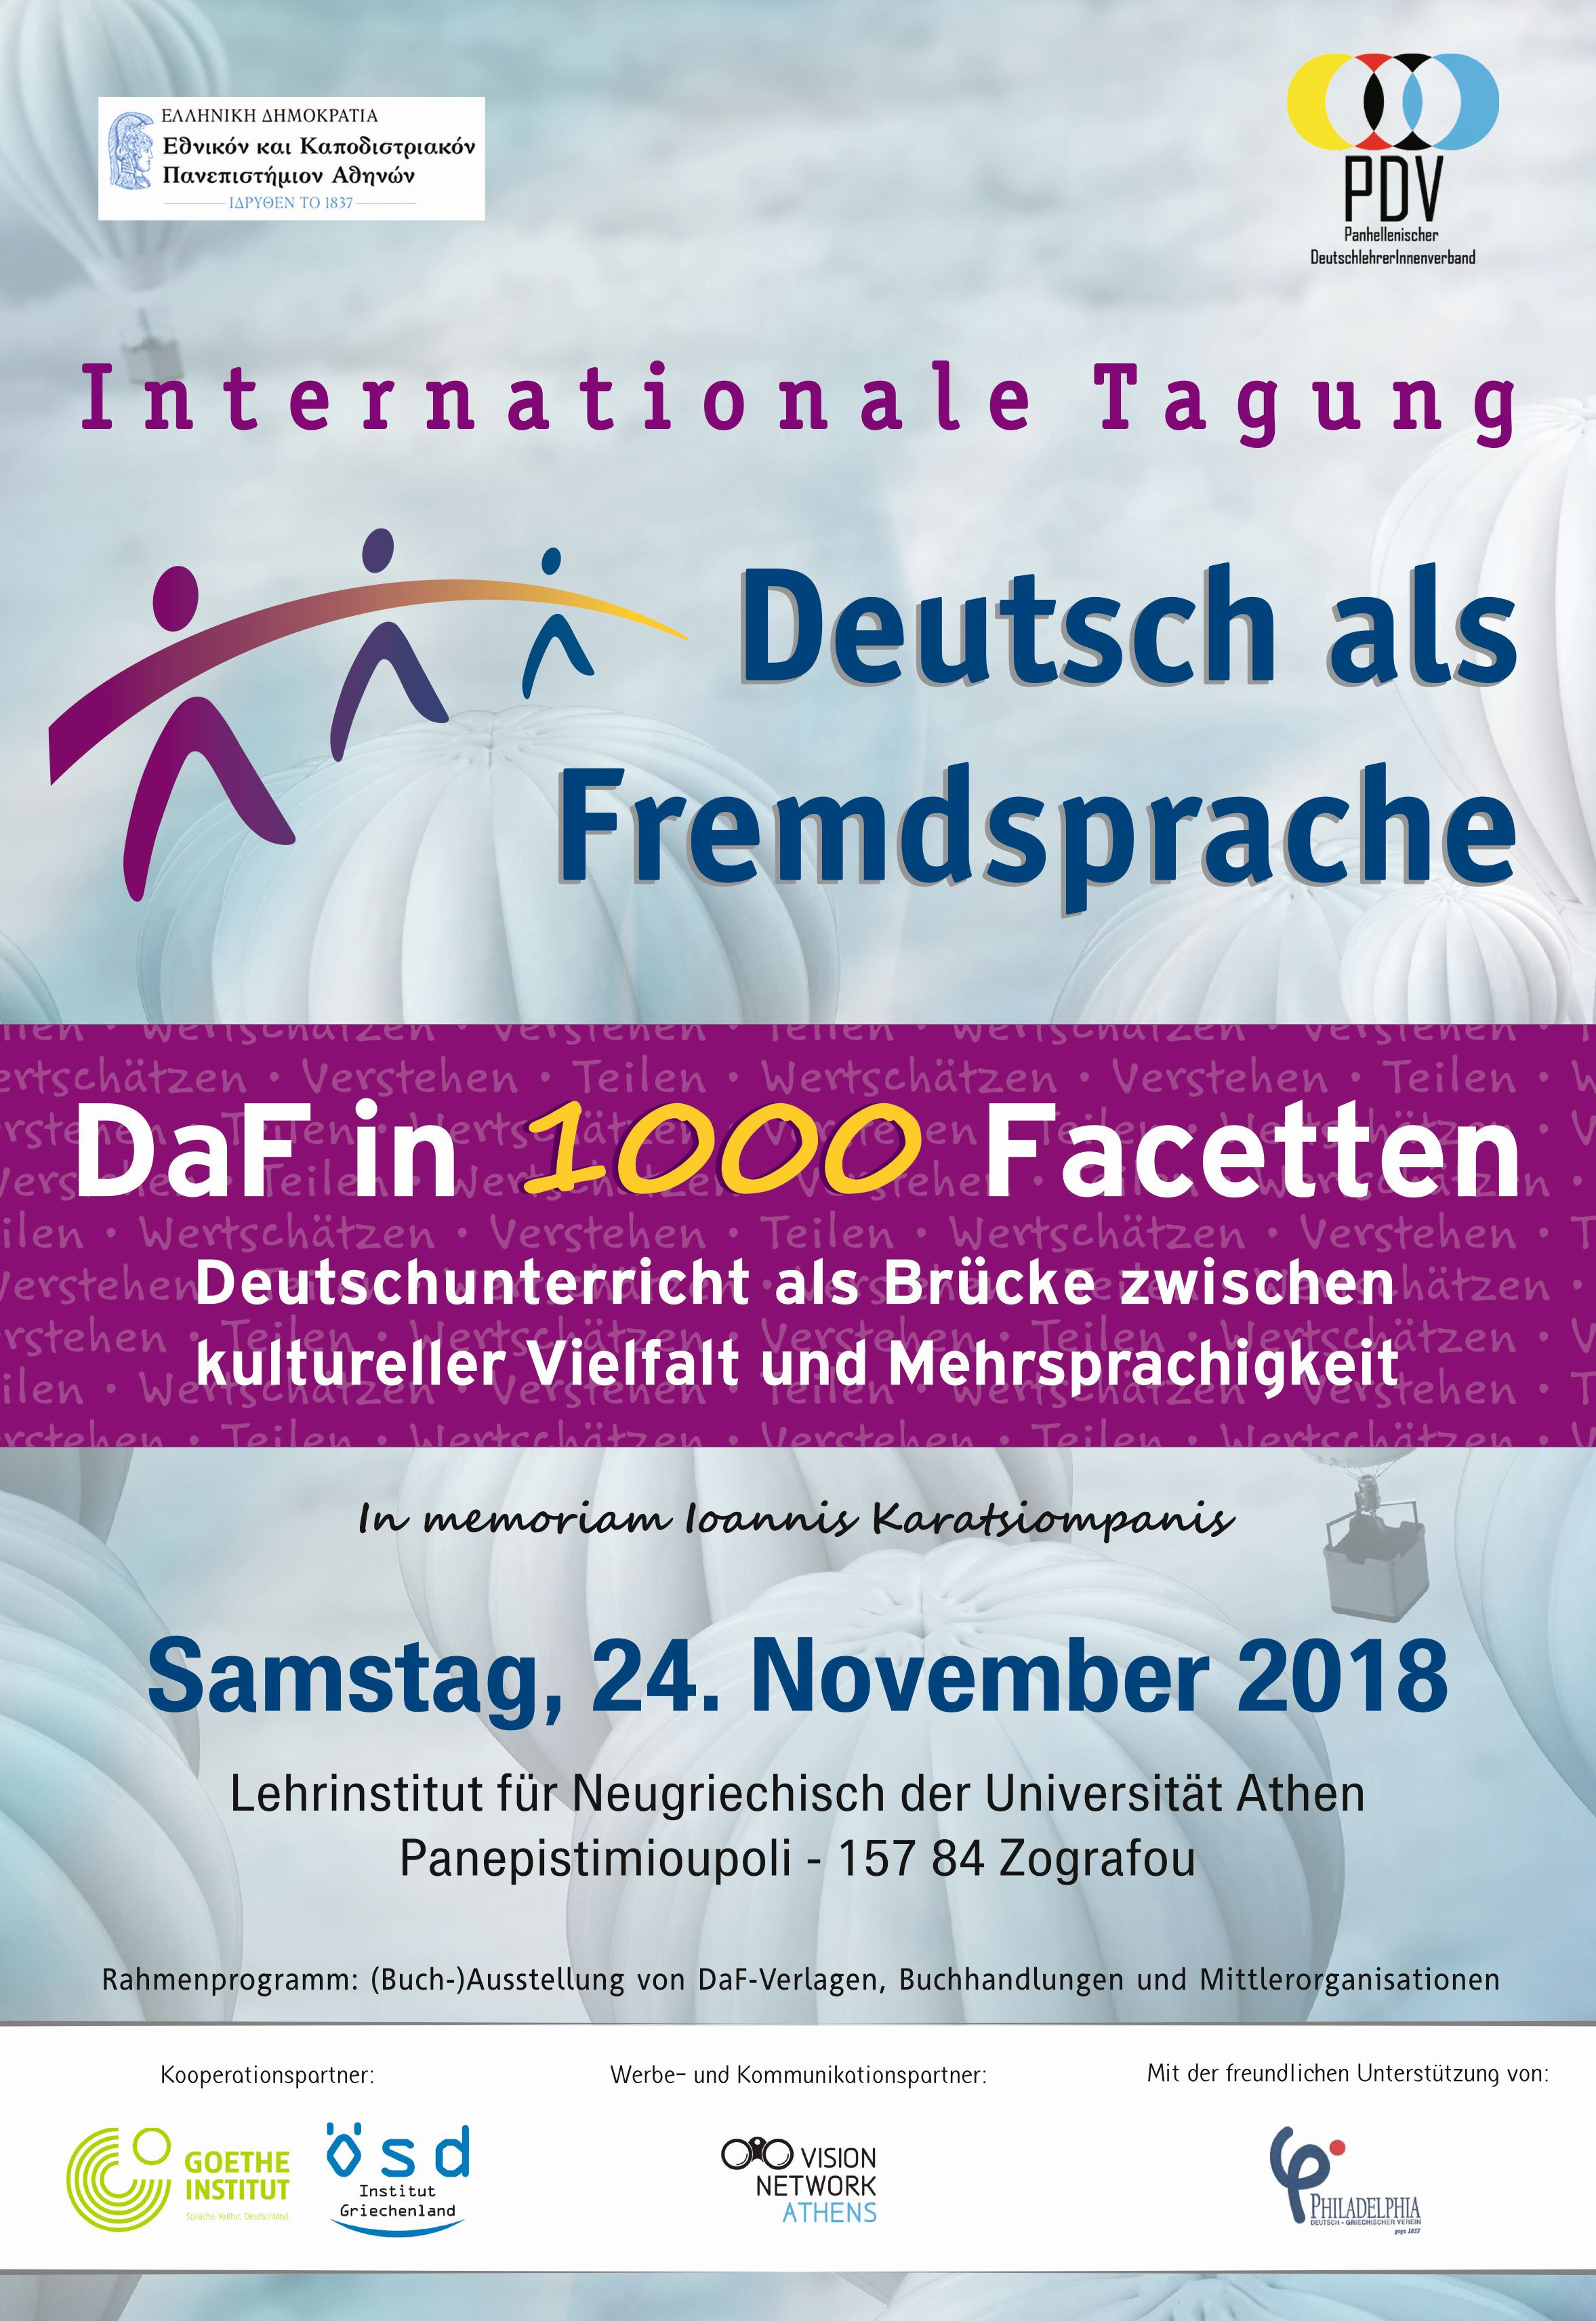 Internationale Tagung Deutsch als Fremdsprache - Plakat, Programm